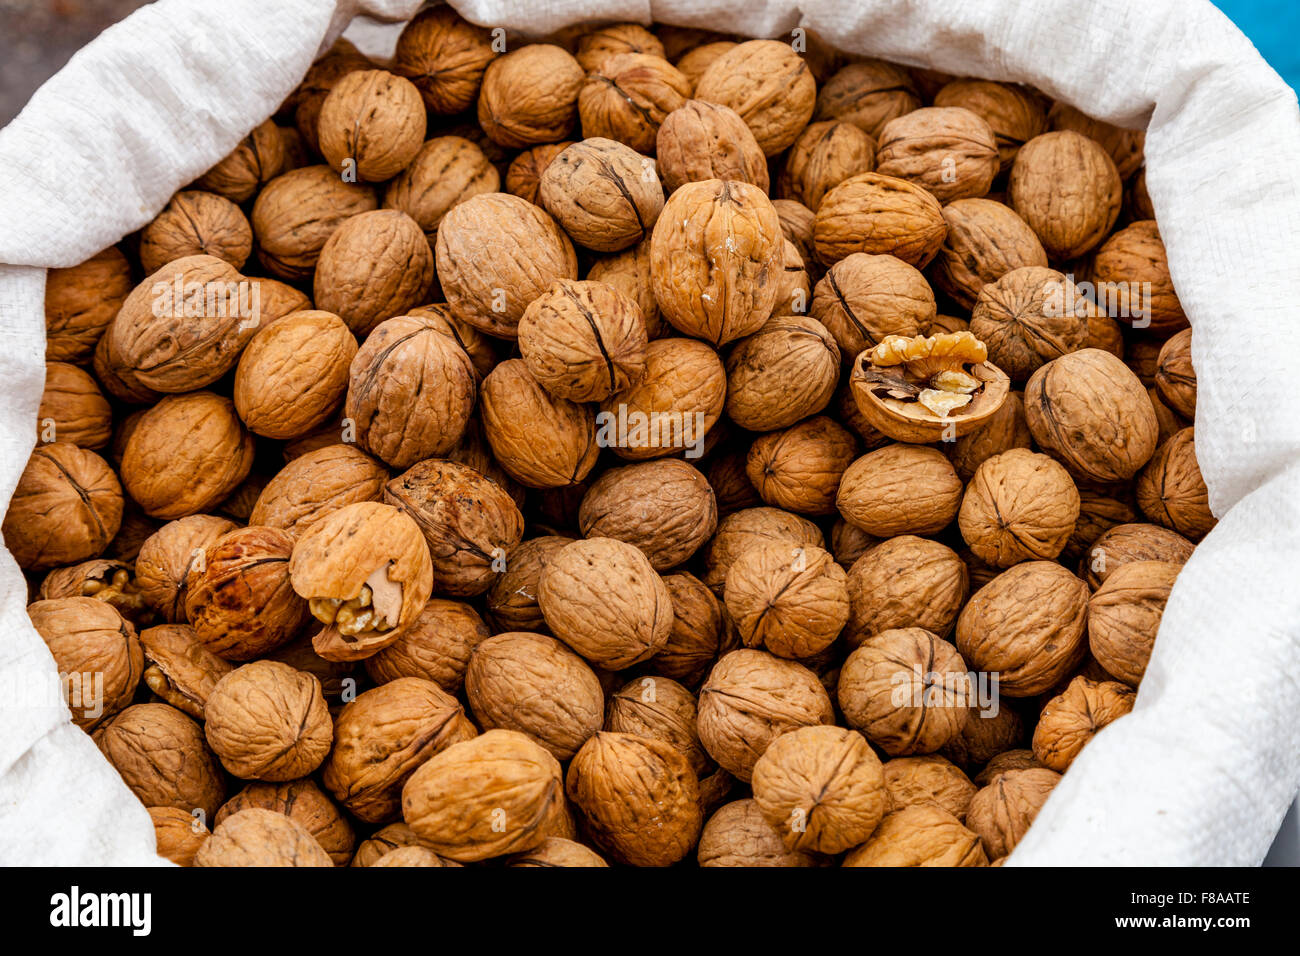 Turkish Nuts For Sale Stock Photos & Turkish Nuts For Sale